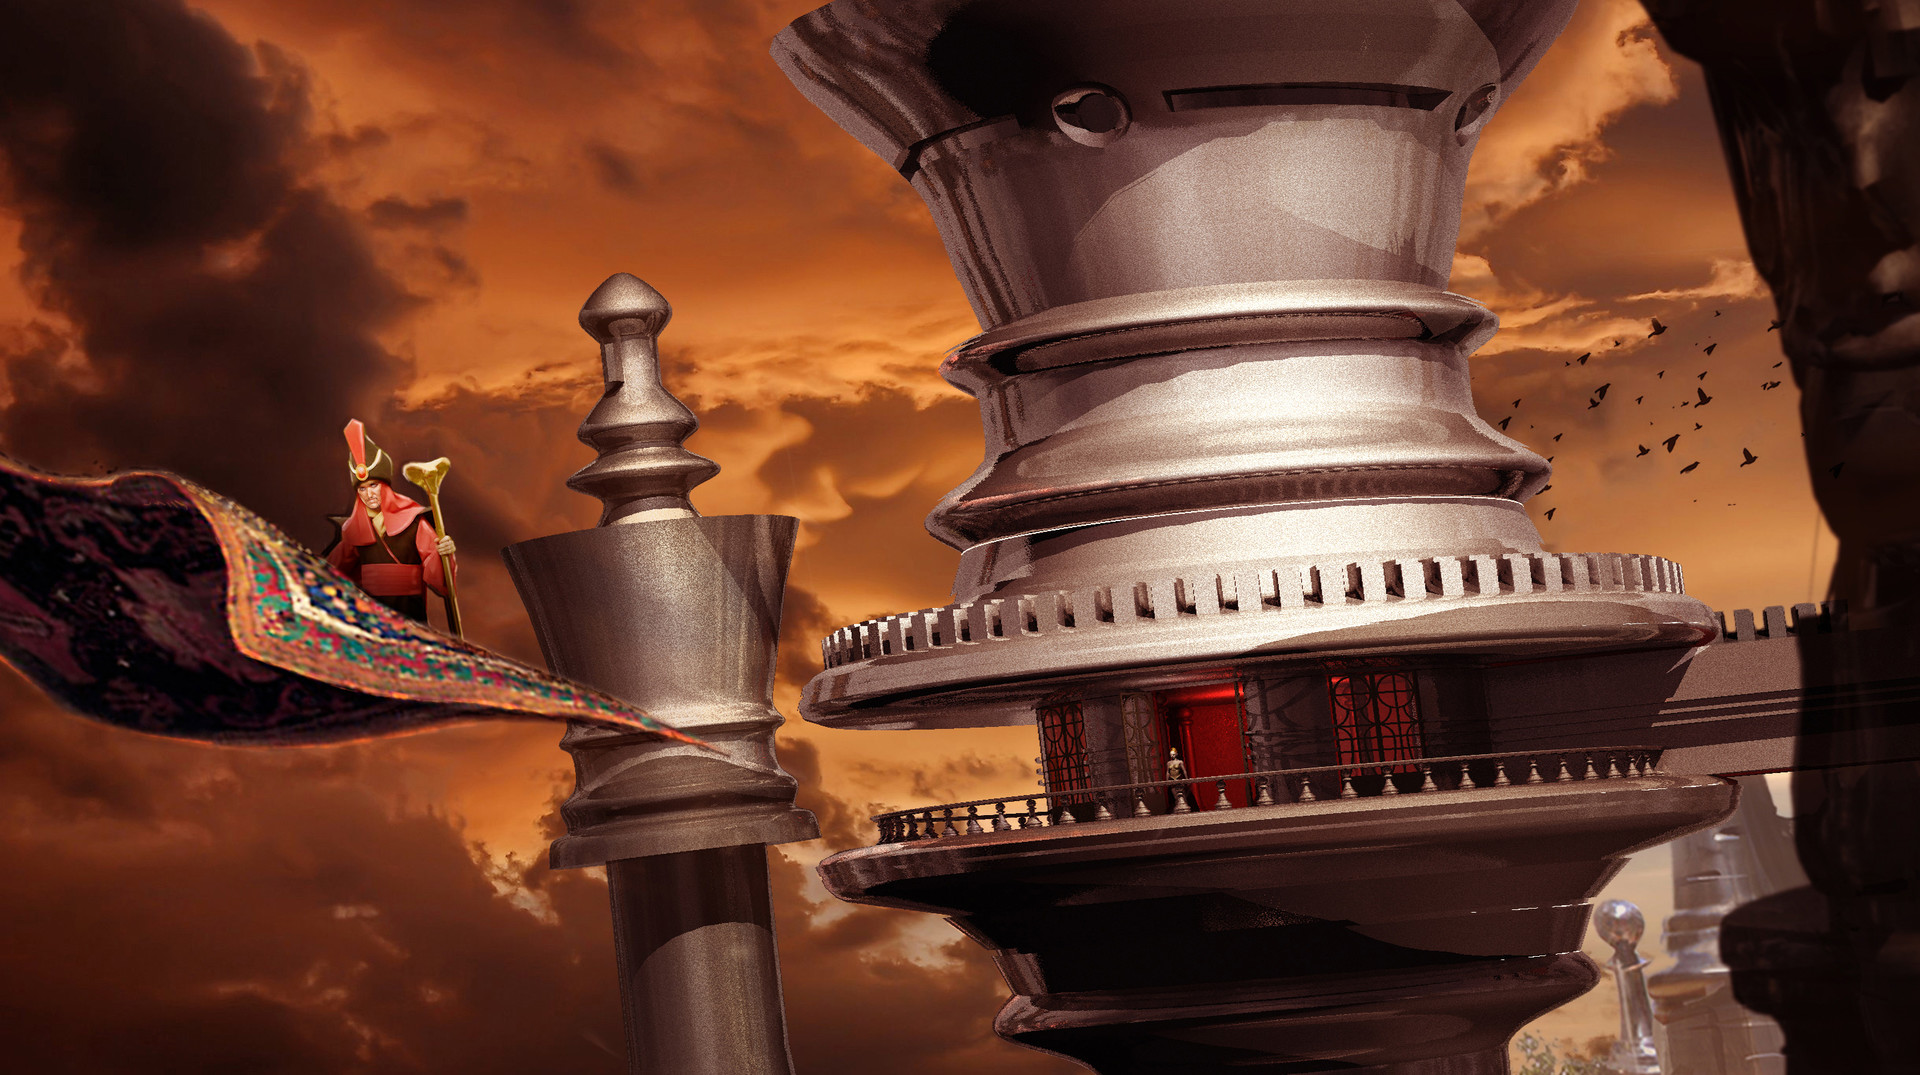 3D Chess Piece City Concept for ABC's Once Upon a Time in Wonderland